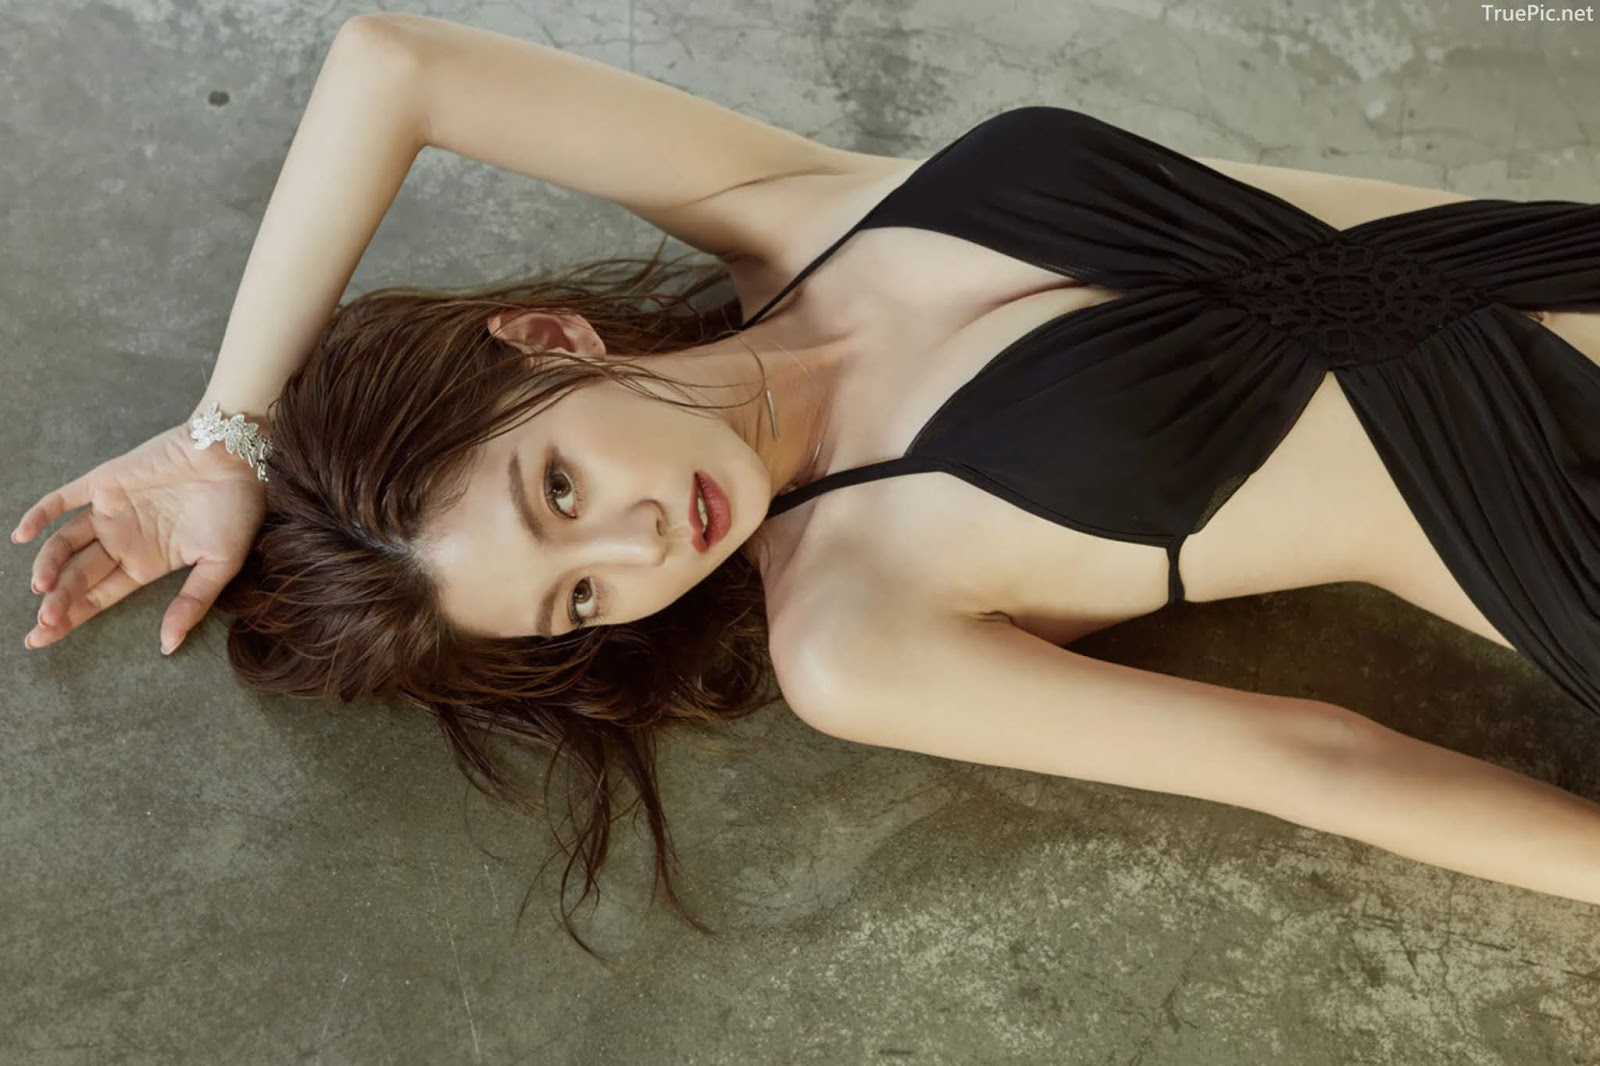 Korean model and fashion - Lee Chae Eun - Monokini for summer vacation - Picture 2